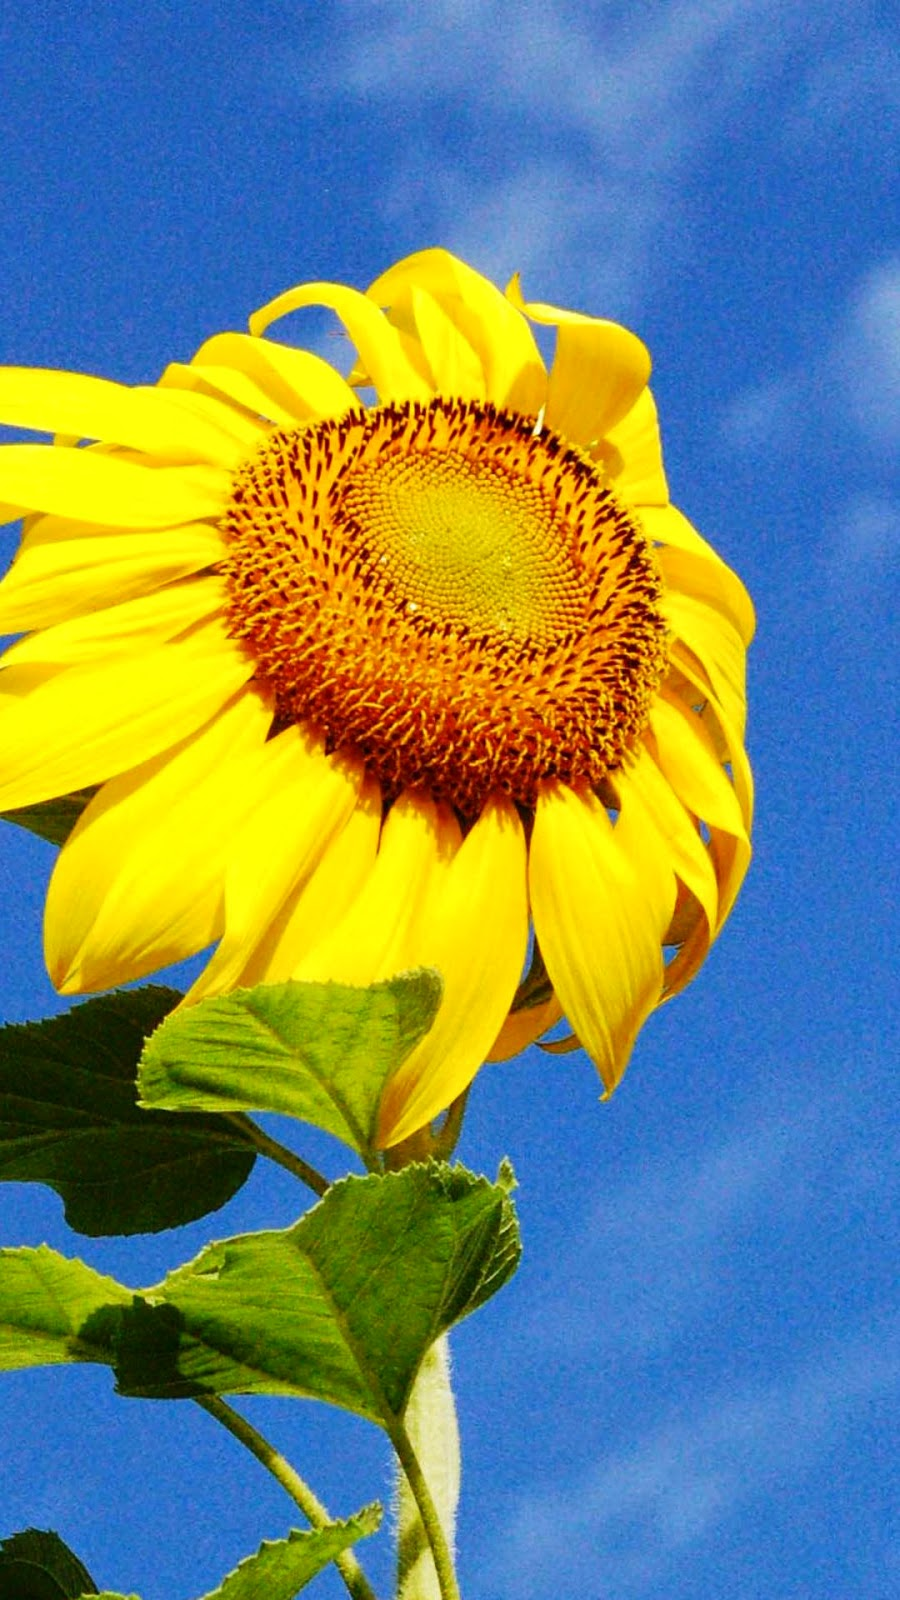 yellow sunflower iphone 6 wallpaper - iphone 6 wallpapers hd